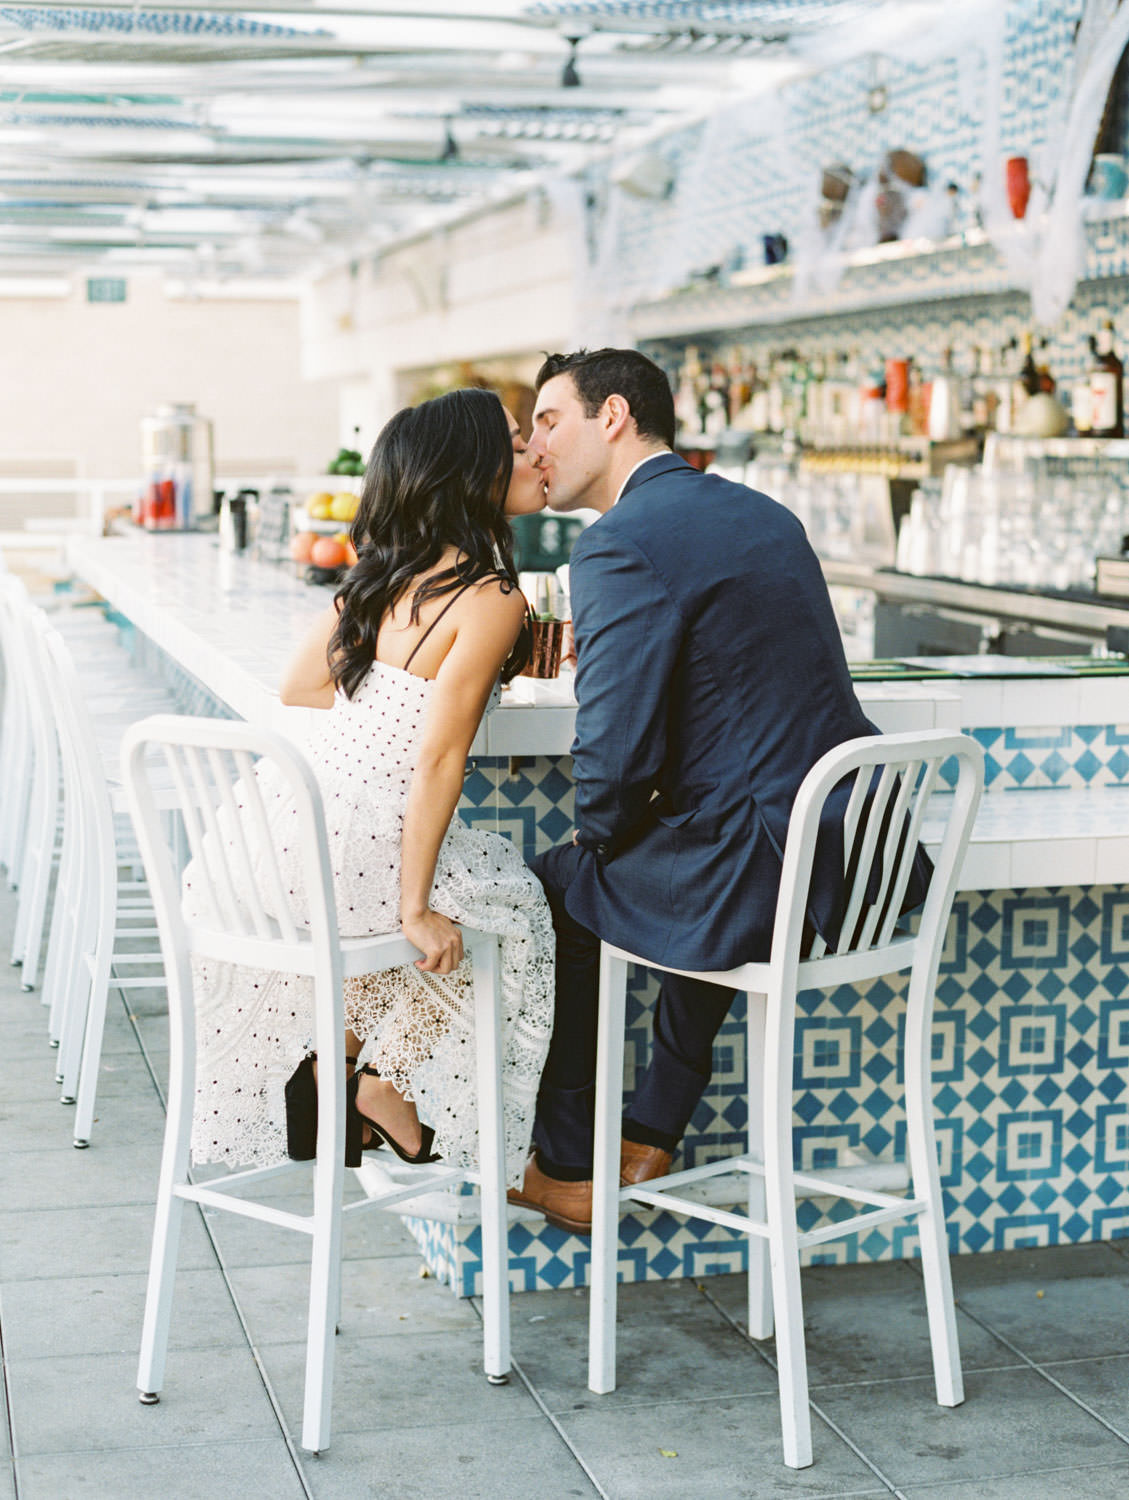 Groom and bride at a marble table drinking cocktails and kissing. Bride in self portrait Ivory Hibiscus Floral Guipure Midi Dress and groom in navy suit. Fairweather Rooftop Bar Engagement Photos on film by Cavin Elizabeth Photography